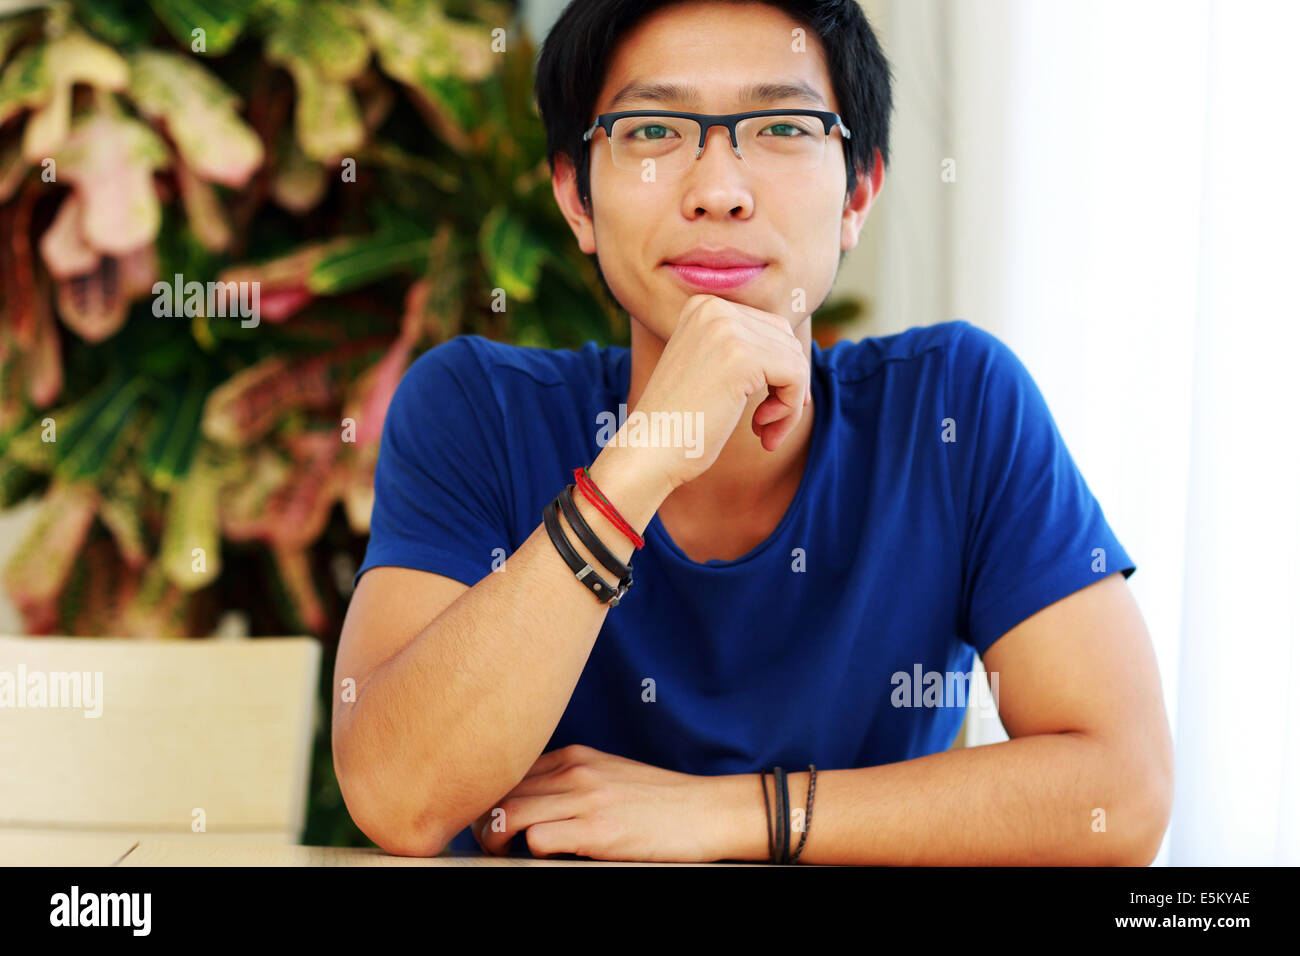 71782772b087 Chinese Man Wearing Glasses Stock Photos   Chinese Man Wearing ...